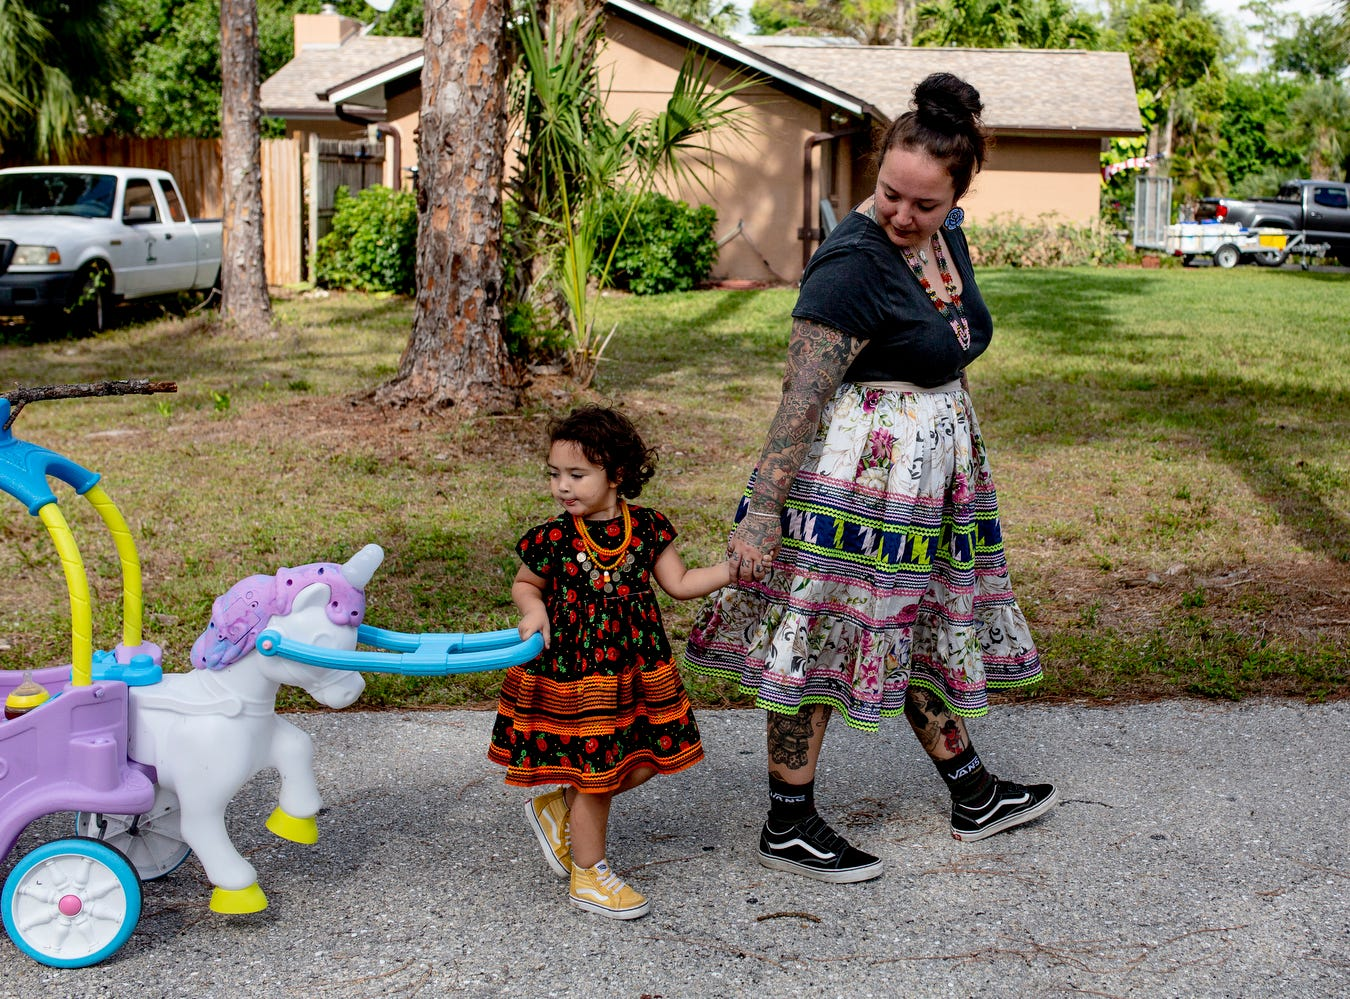 "Dakota Osceola and her daughter Mia walk down the driveway of their home in Naples on May 3, 2019. Many members of their family, including Dakota's mother, brother, and grandparents, live on the same street as Dakota and Mia. ""We have everything we need, and that's each other,"" she said. ""We're trying to be financially independent, trying our best to work as hard as we can to accomplish our goals, and that's really what it's been about since the beginning of the Osceolas."""